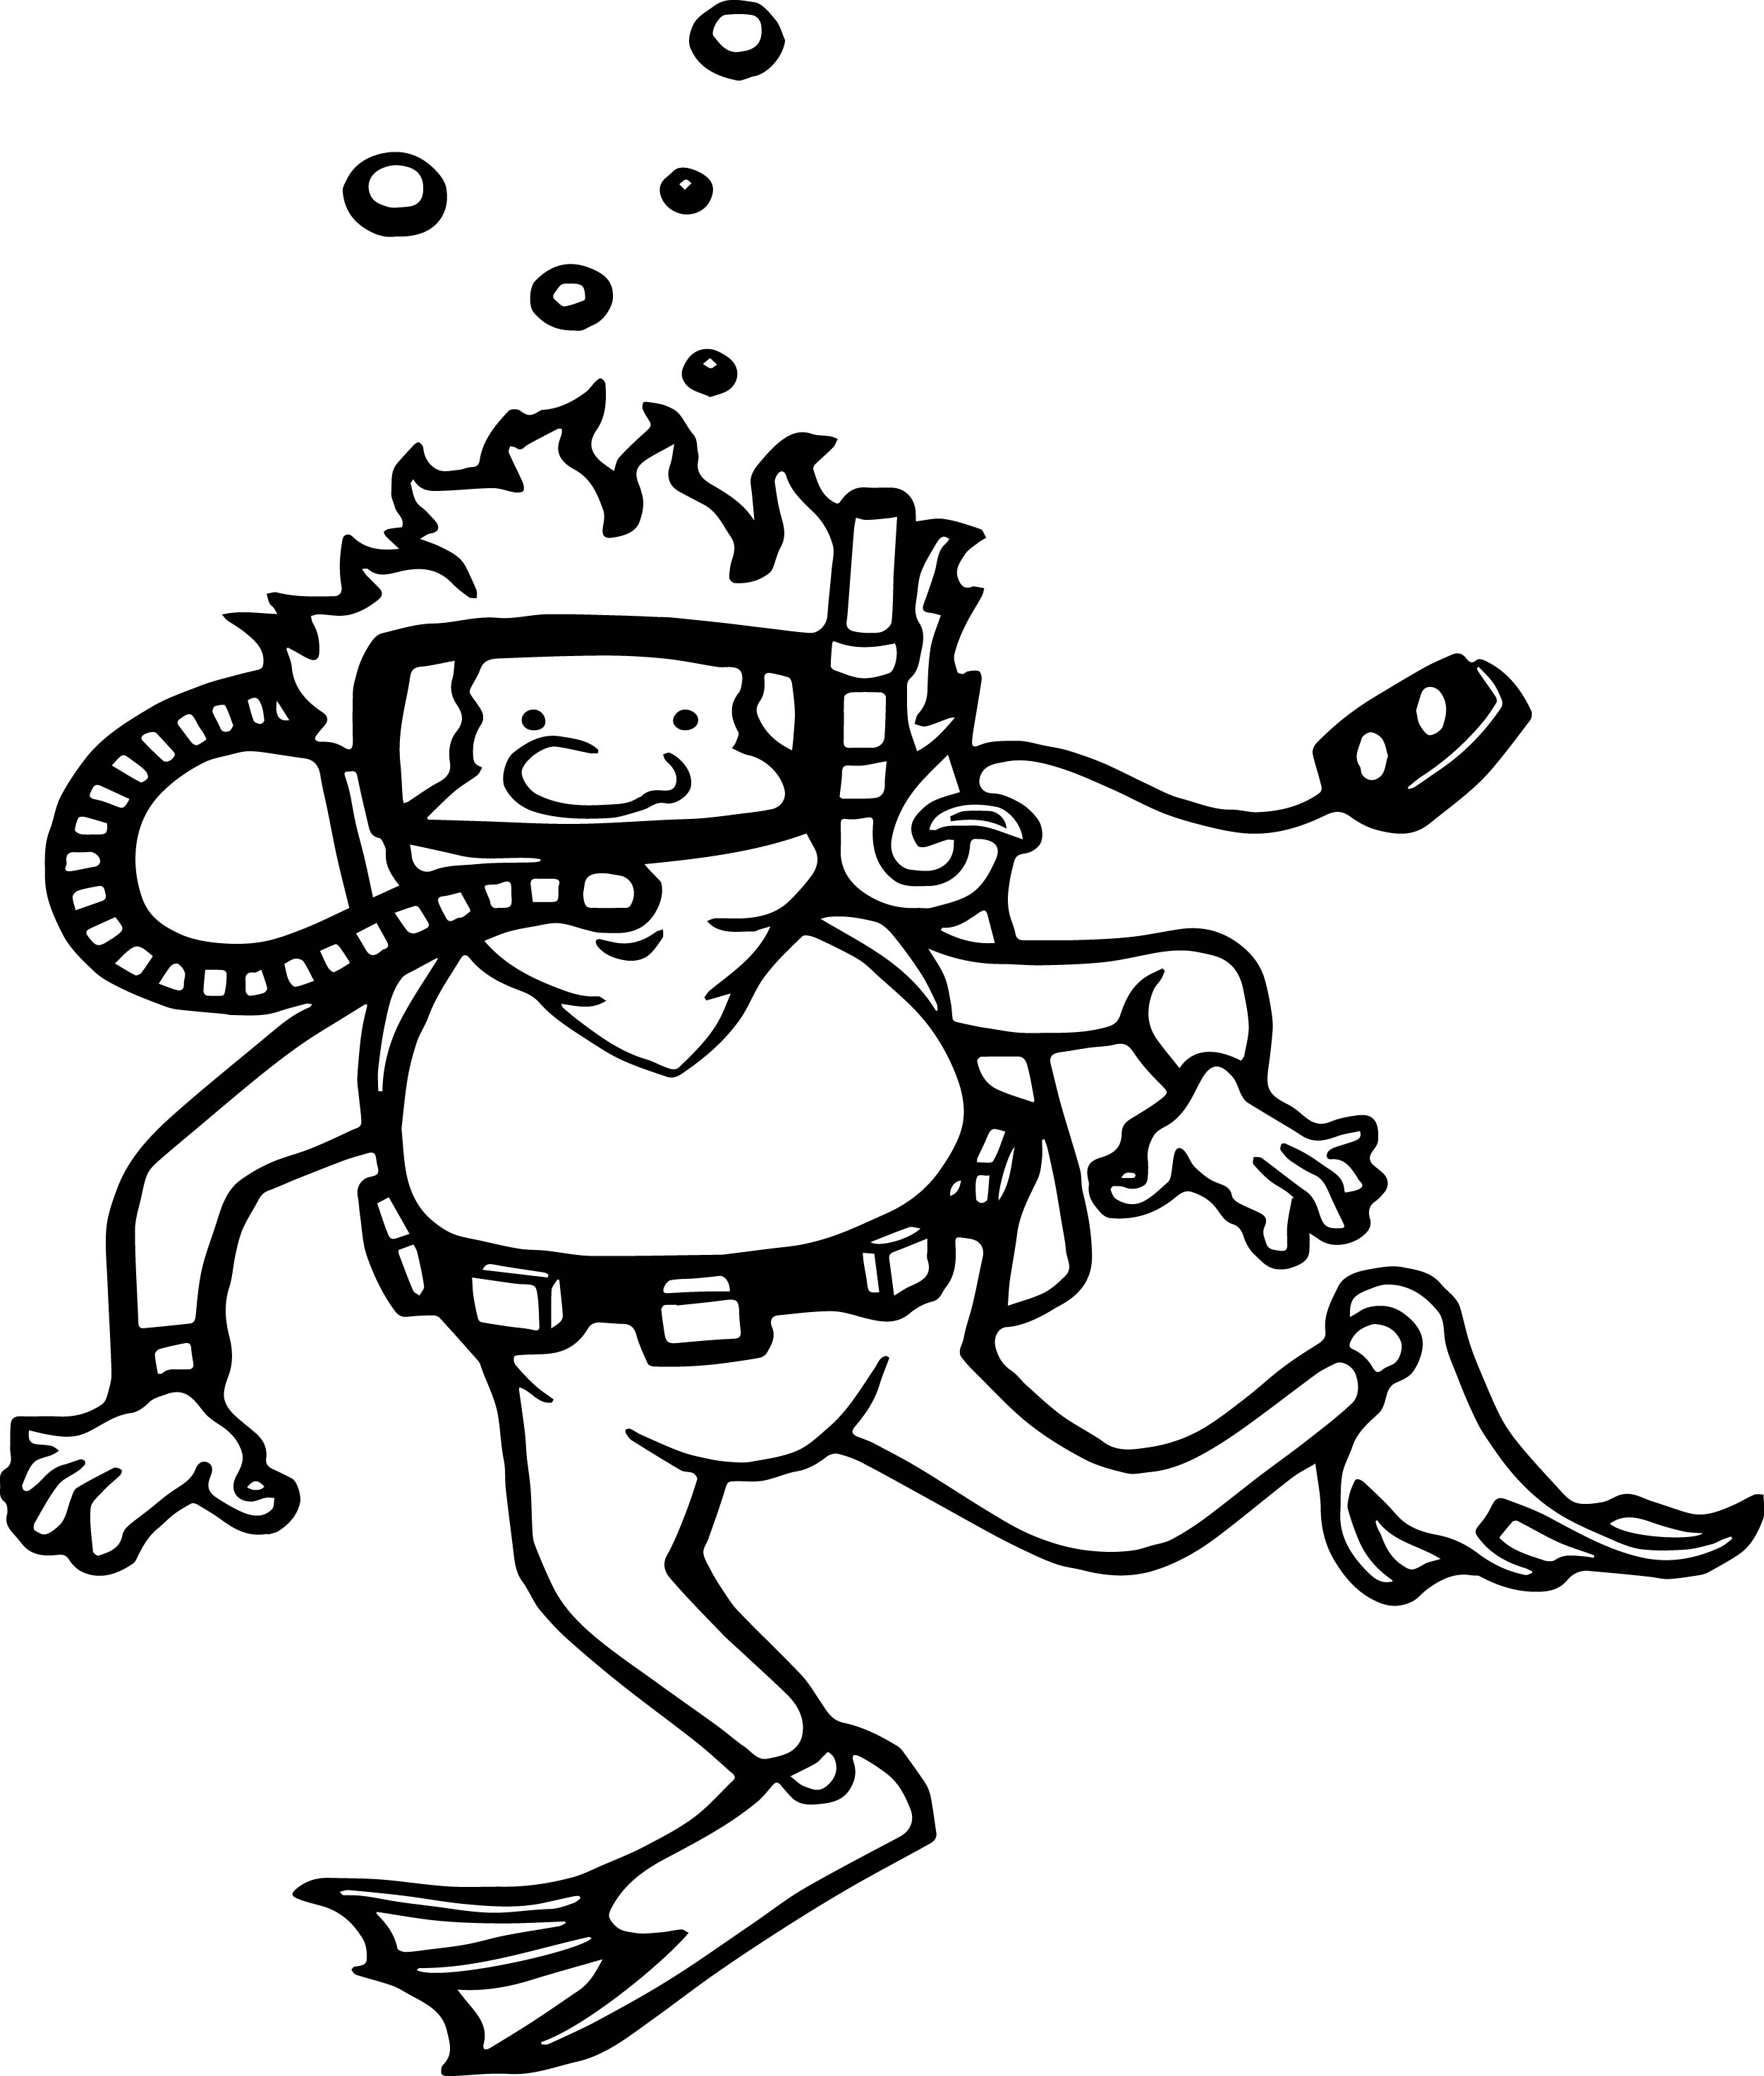 Summer Diver Coloring Page